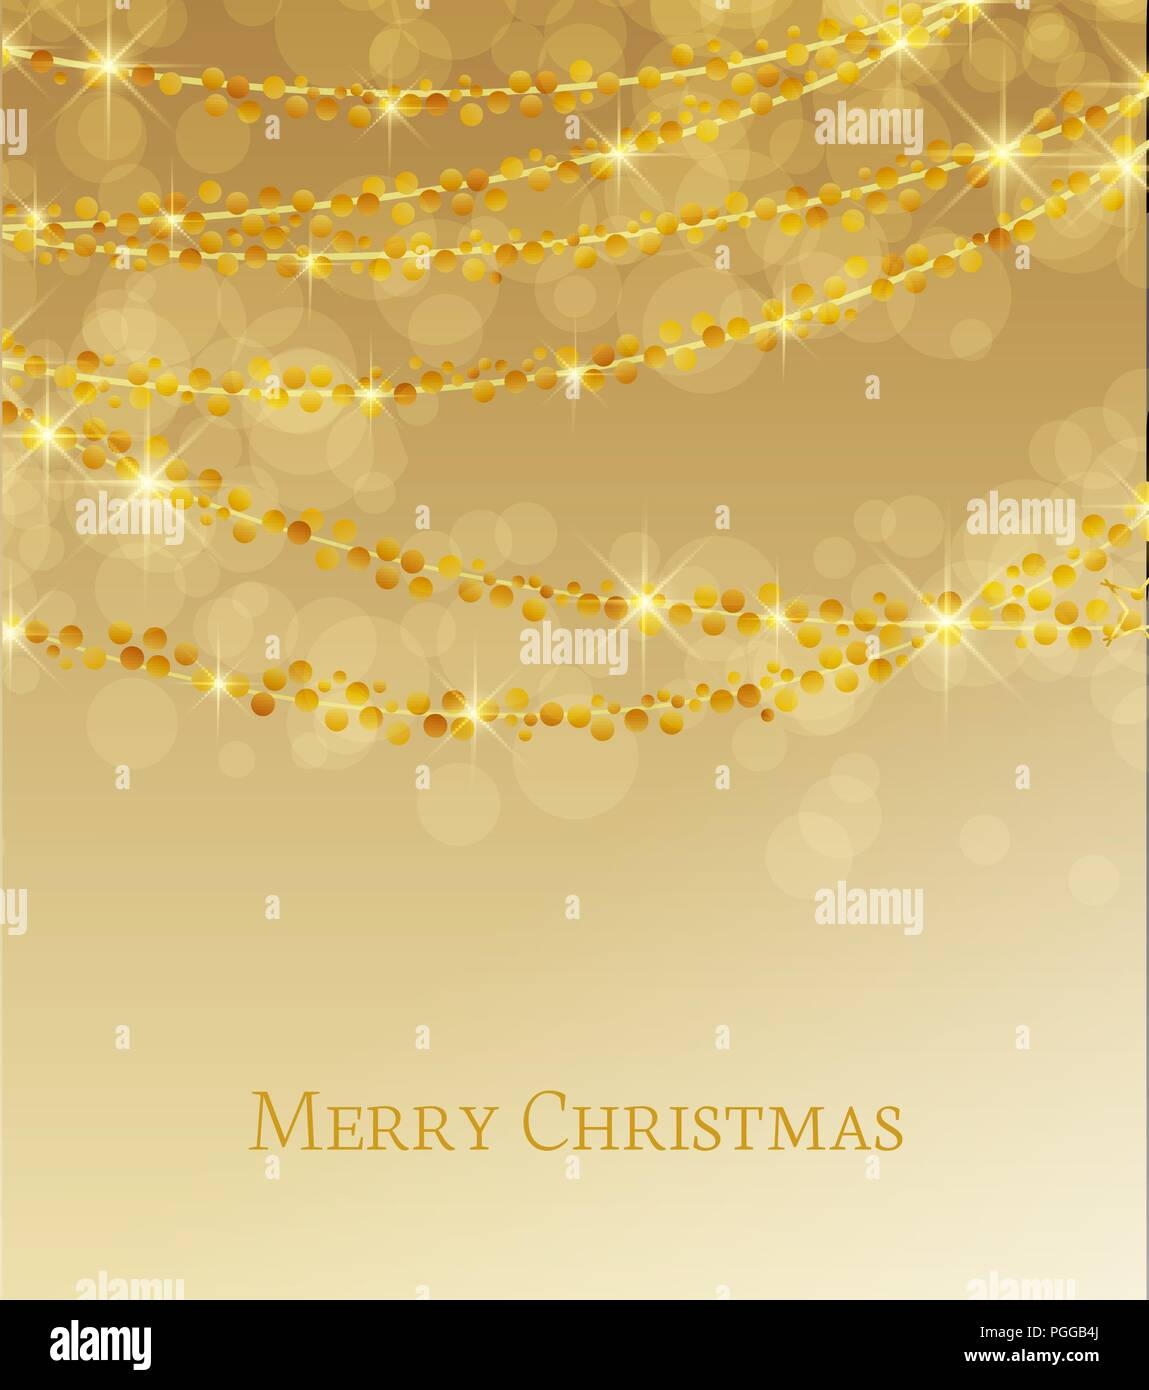 Christmas Background Images Gold.Vector Illustration Abstract Christmas Background Lights On